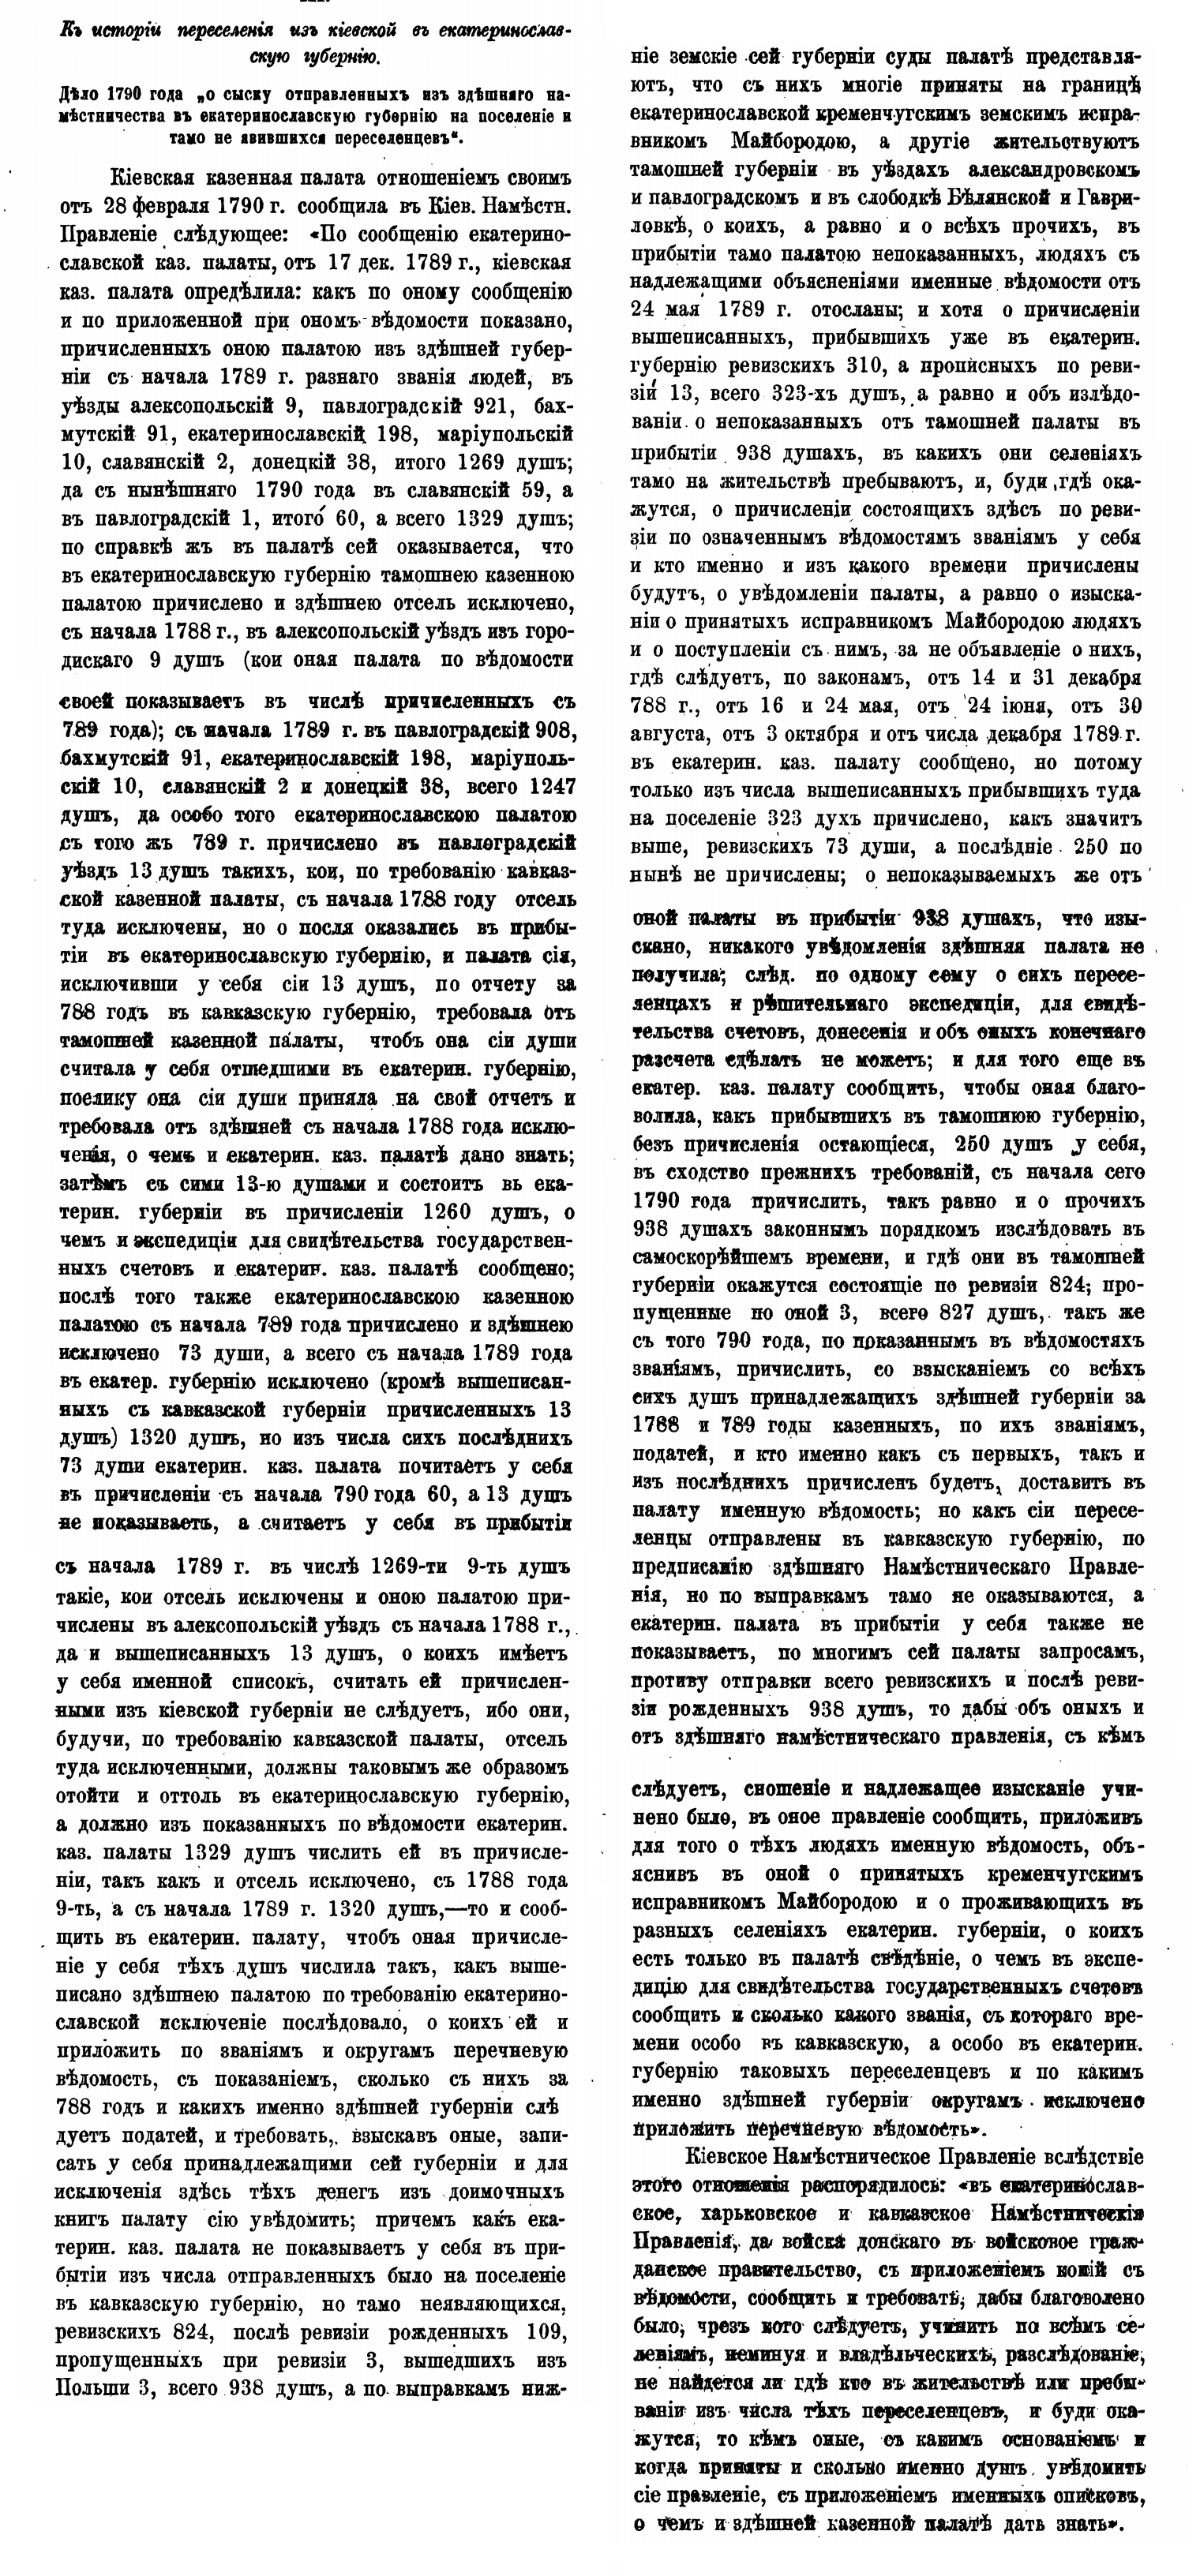 http://images.vfl.ru/ii/1582725504/02988471/29702761.png